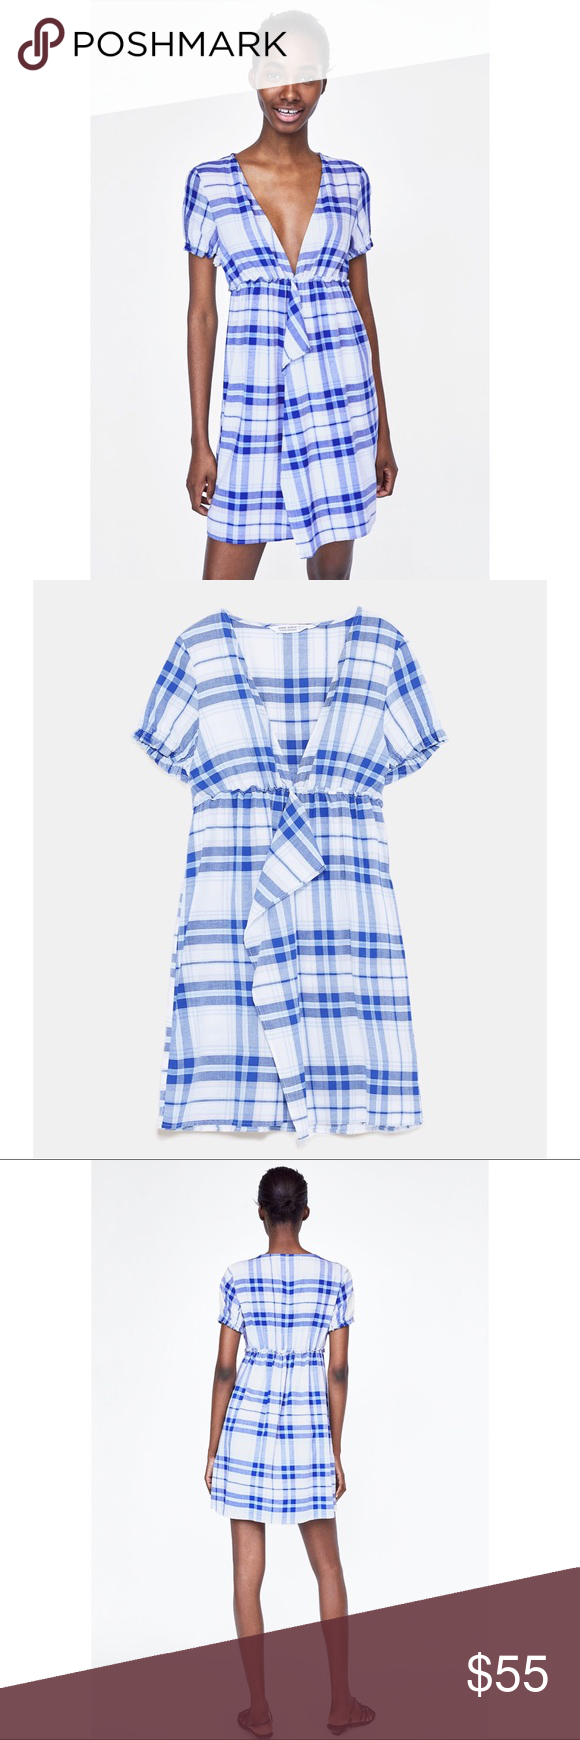 fdfa2bbb40 NWT ◁ ZARA CHECKERED DRESS Sold out everywhere! Size  Small Color  Blue